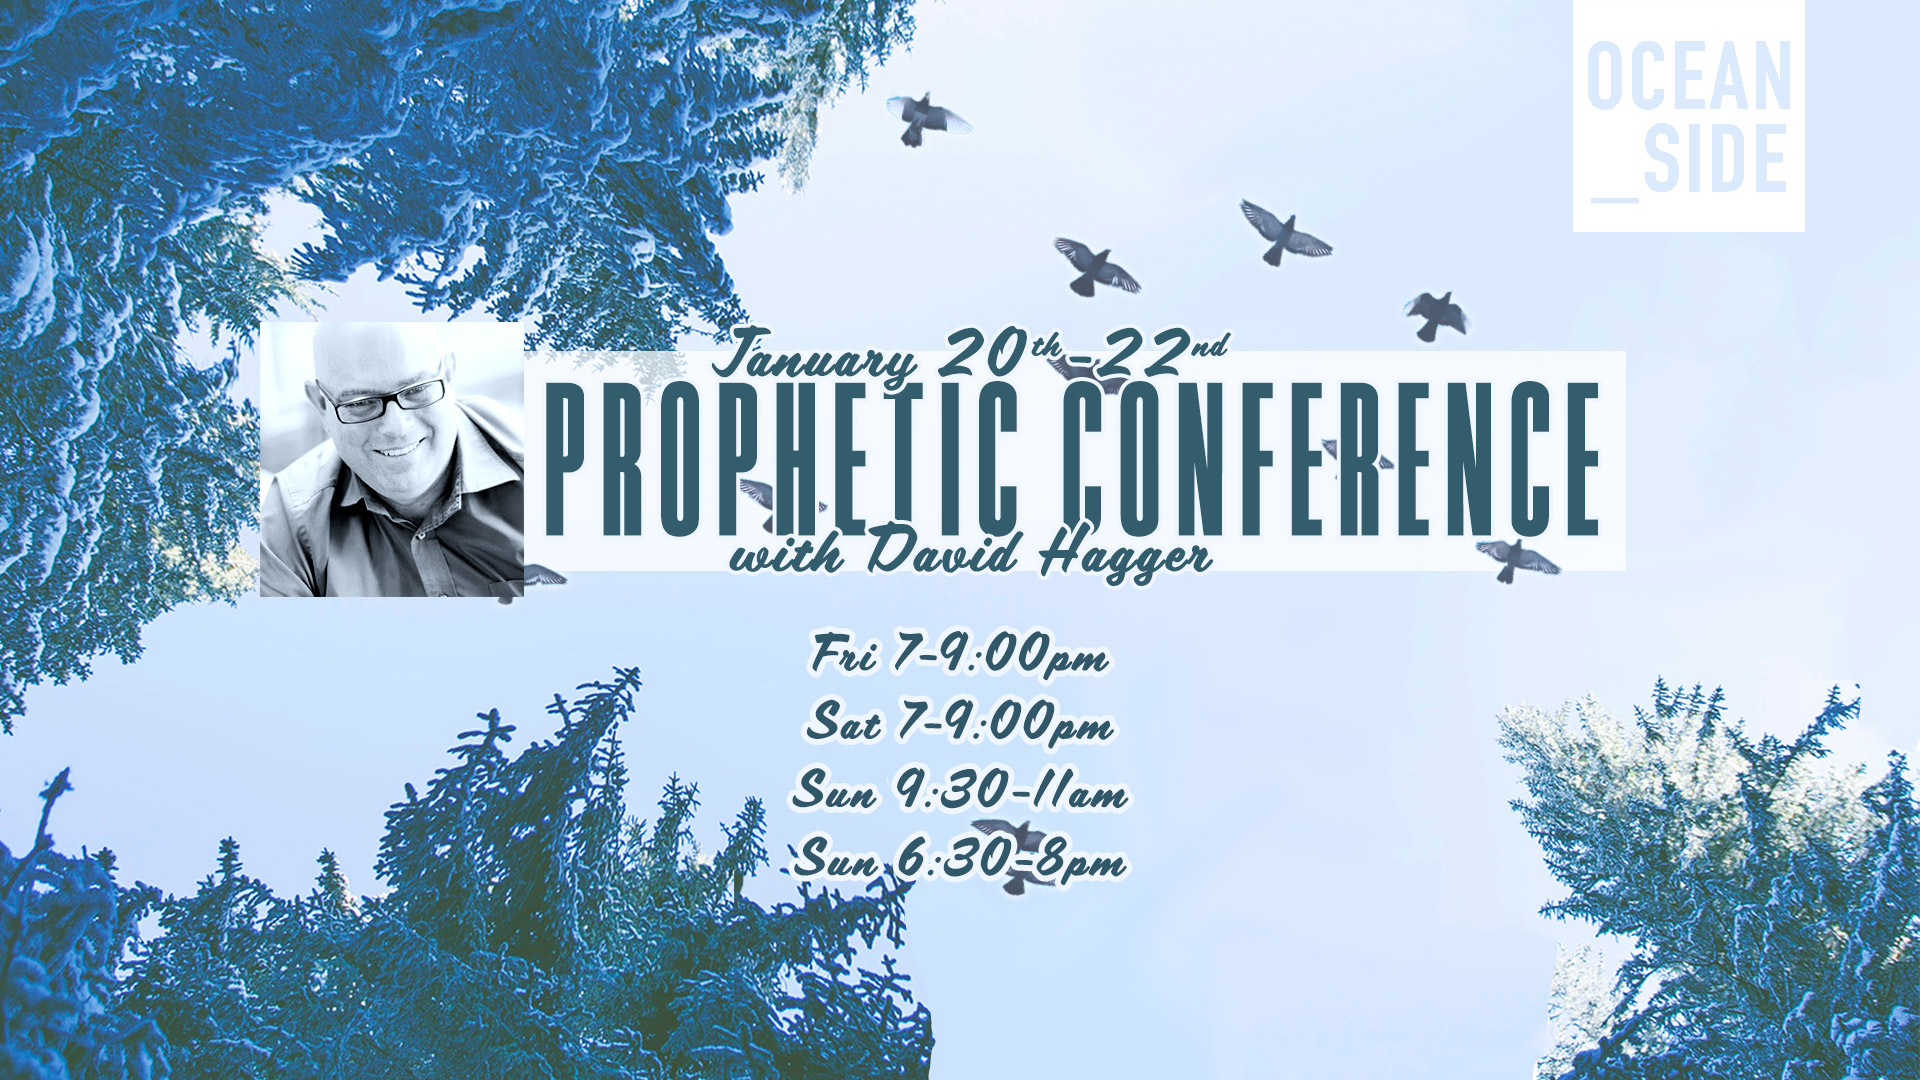 Sunday Evening - Prophetic Conference with David Hagger